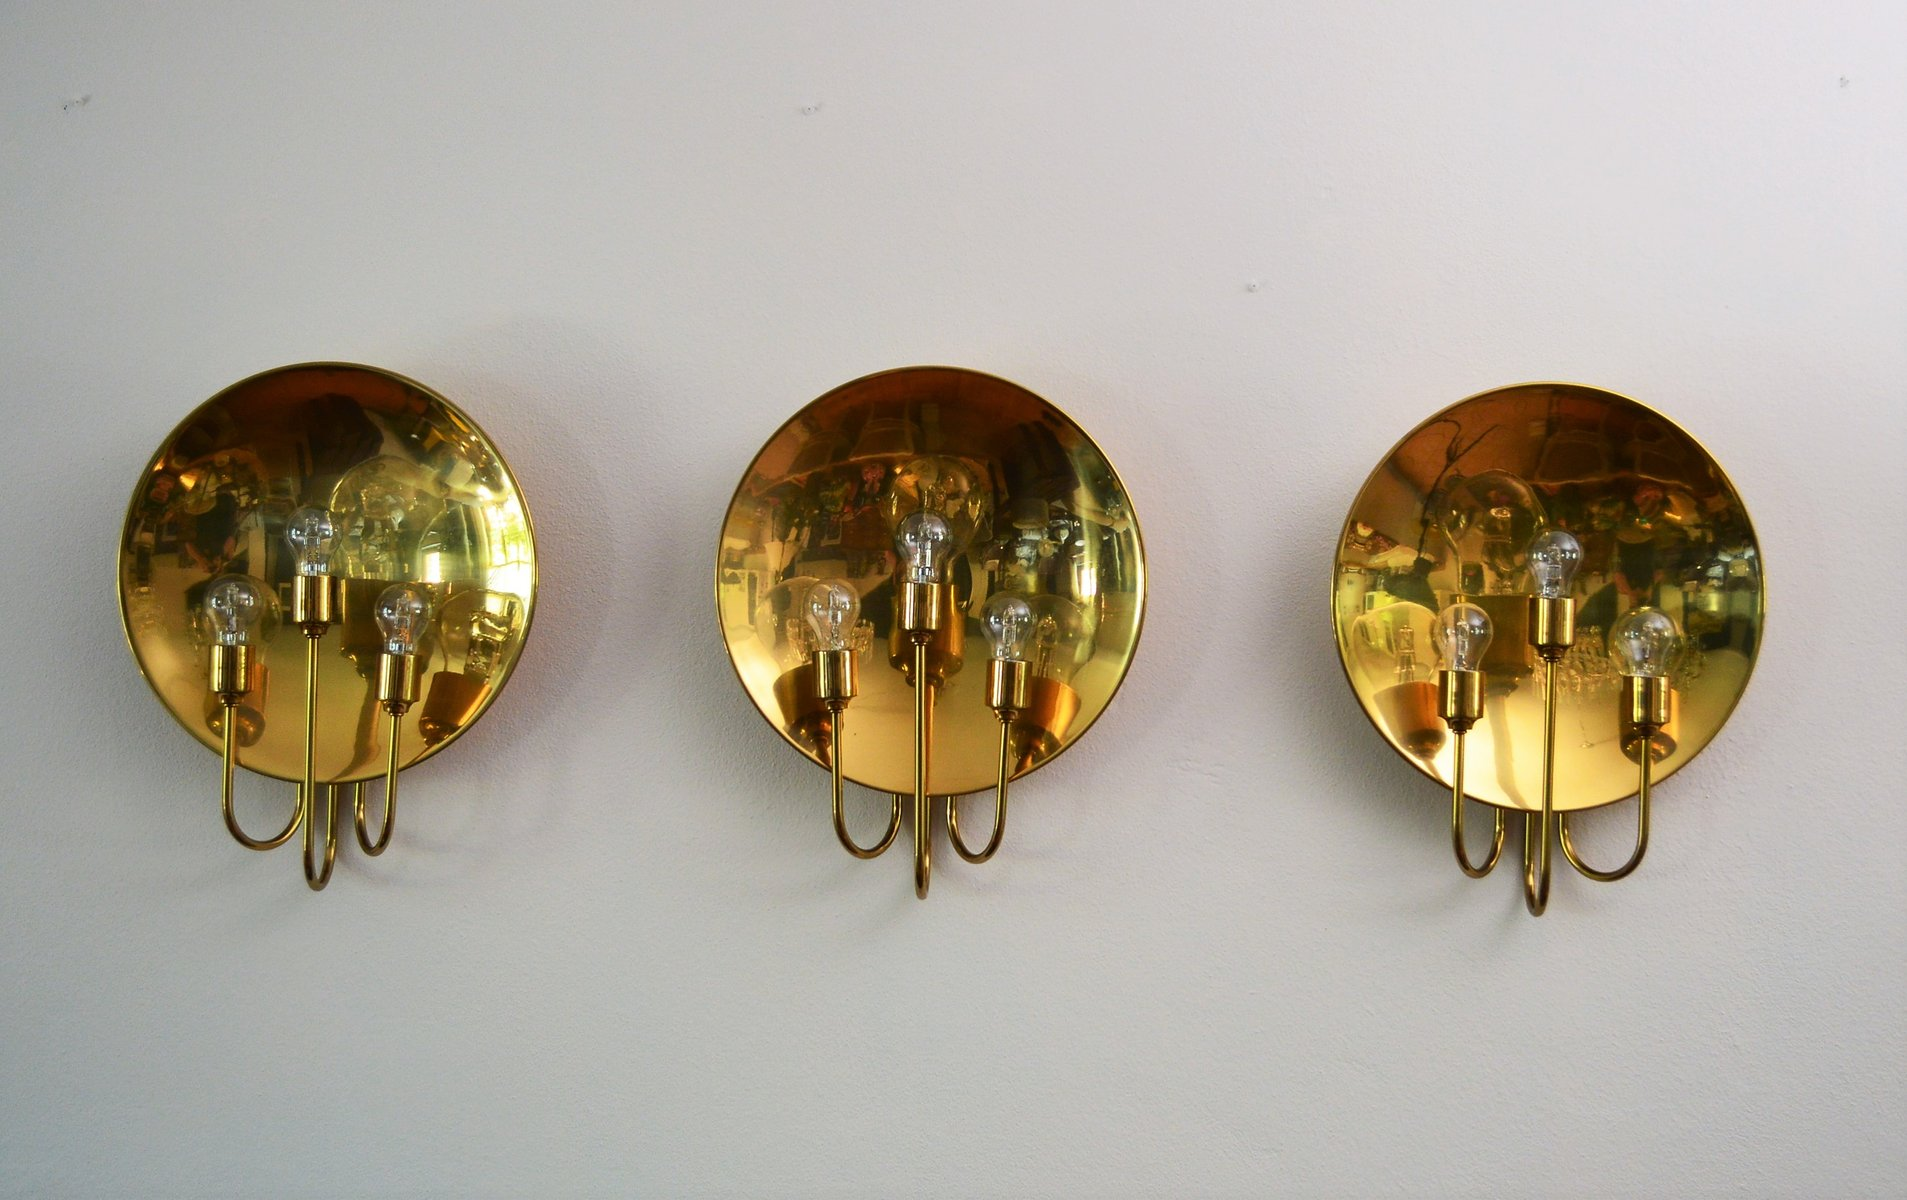 Florian Schulz large brass wall l from florian schulz 1960s for sale at pamono